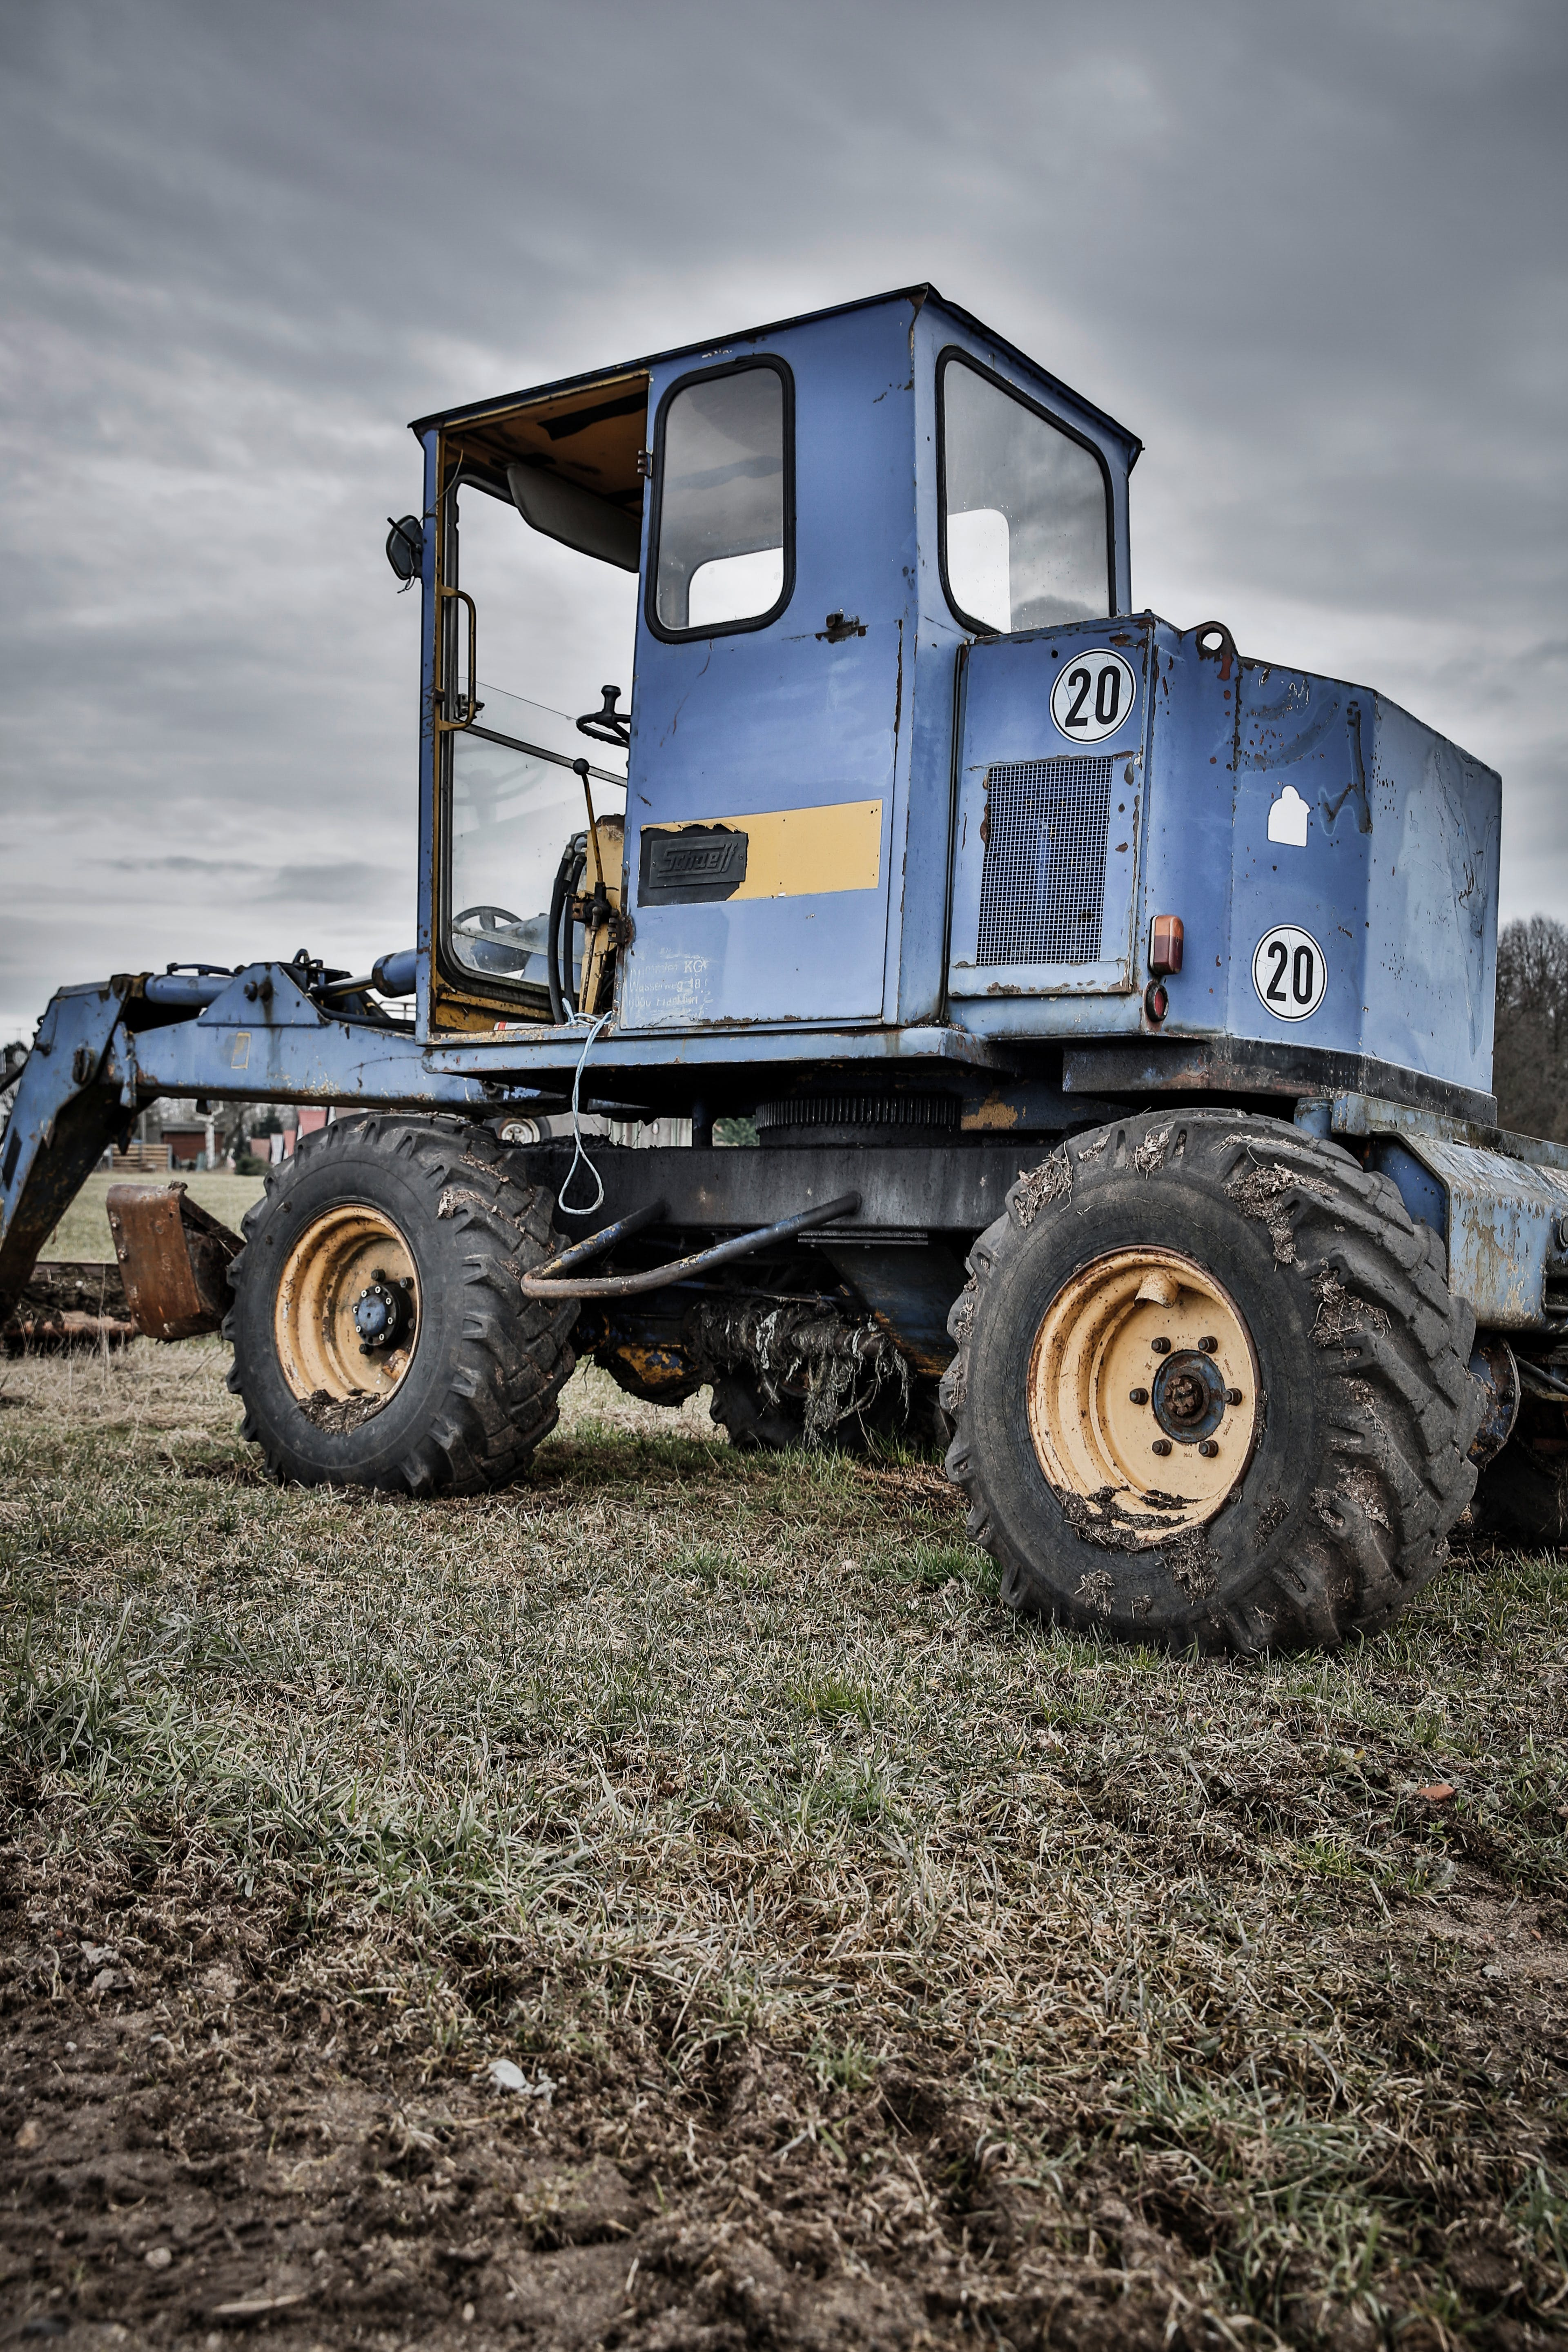 Blue and Black Tractor in Green Grass